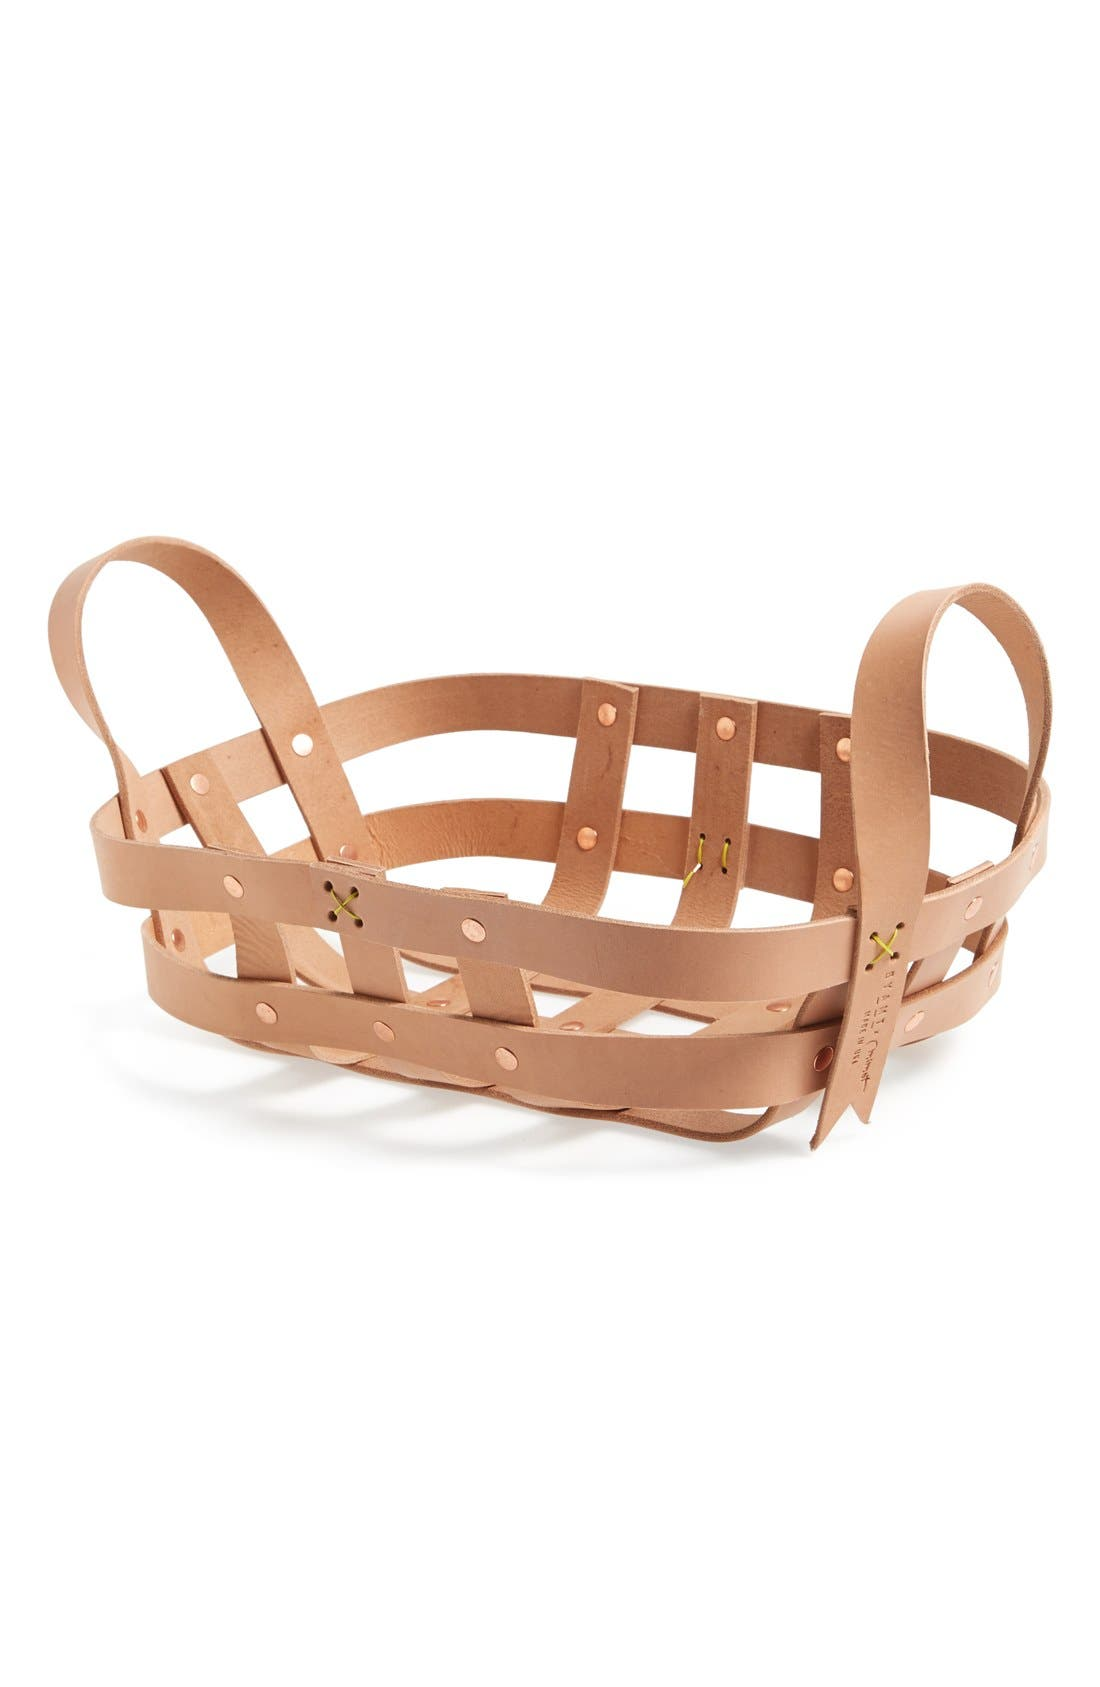 Main Image - byAMT Small Leather Strap Basket